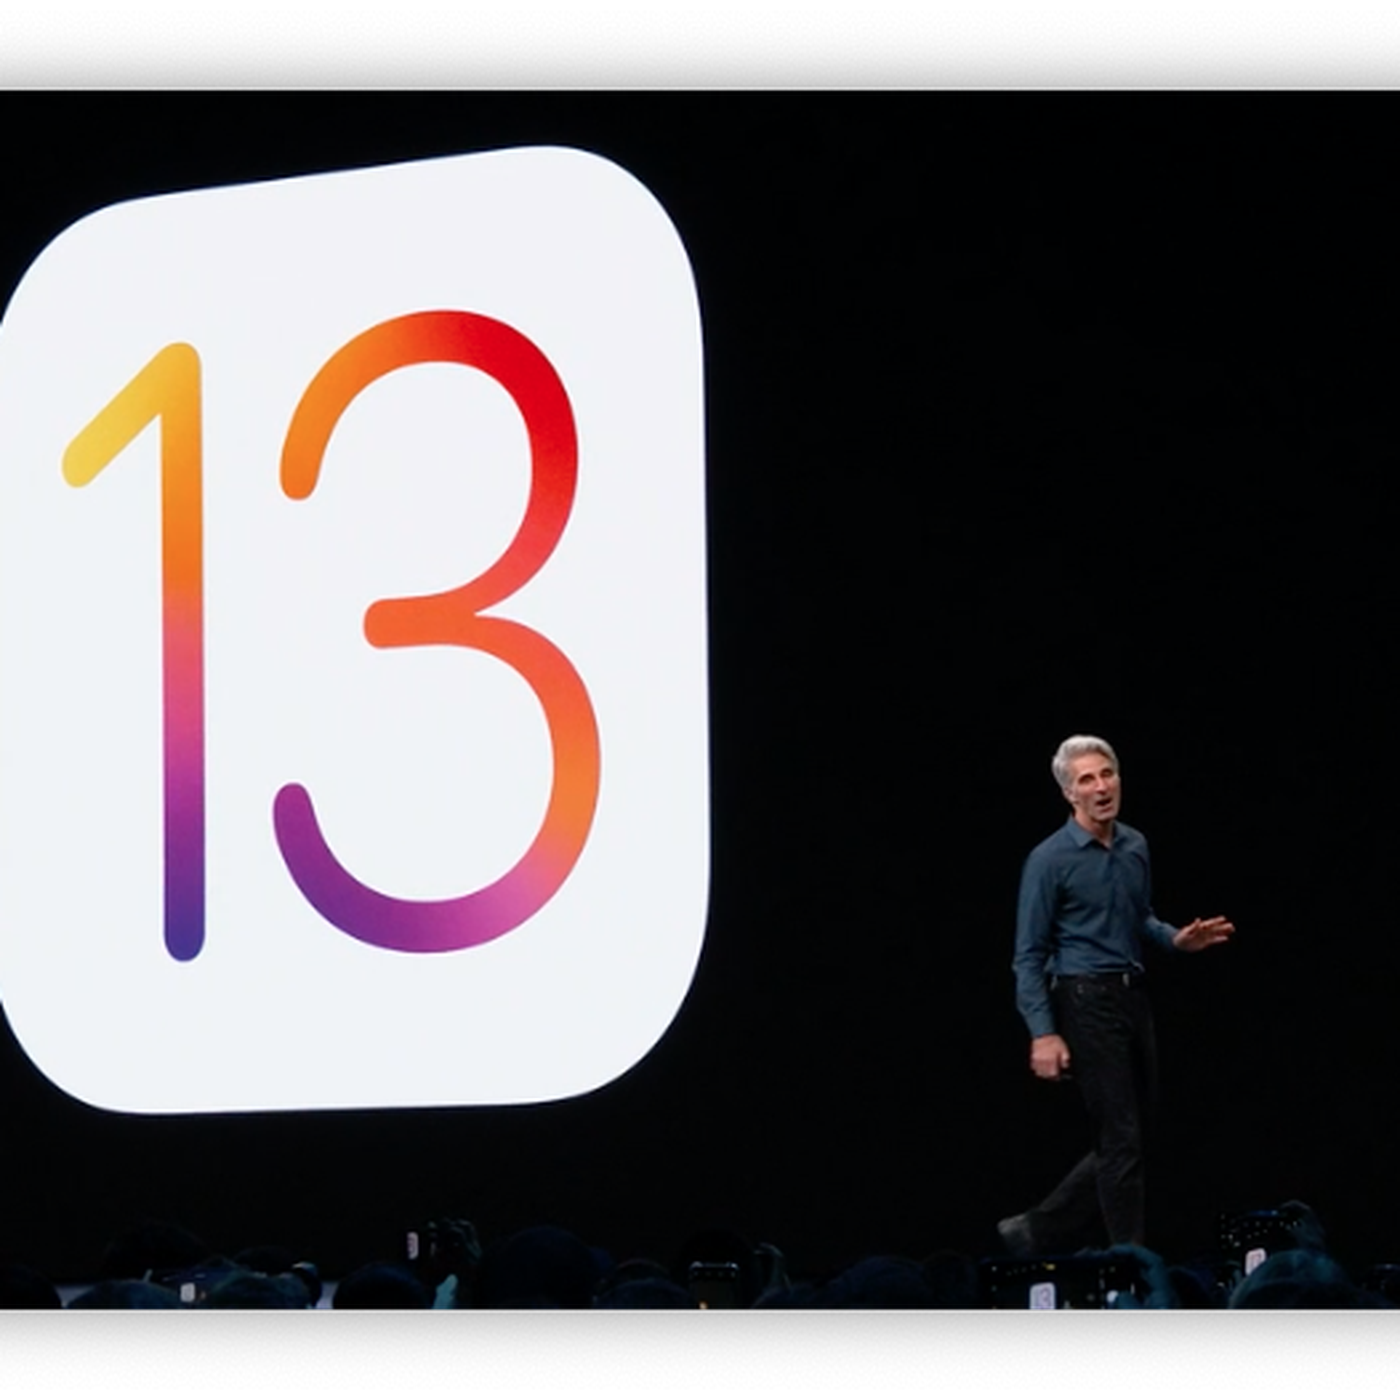 Apple iOS 13: the biggest new features coming to the iPhone